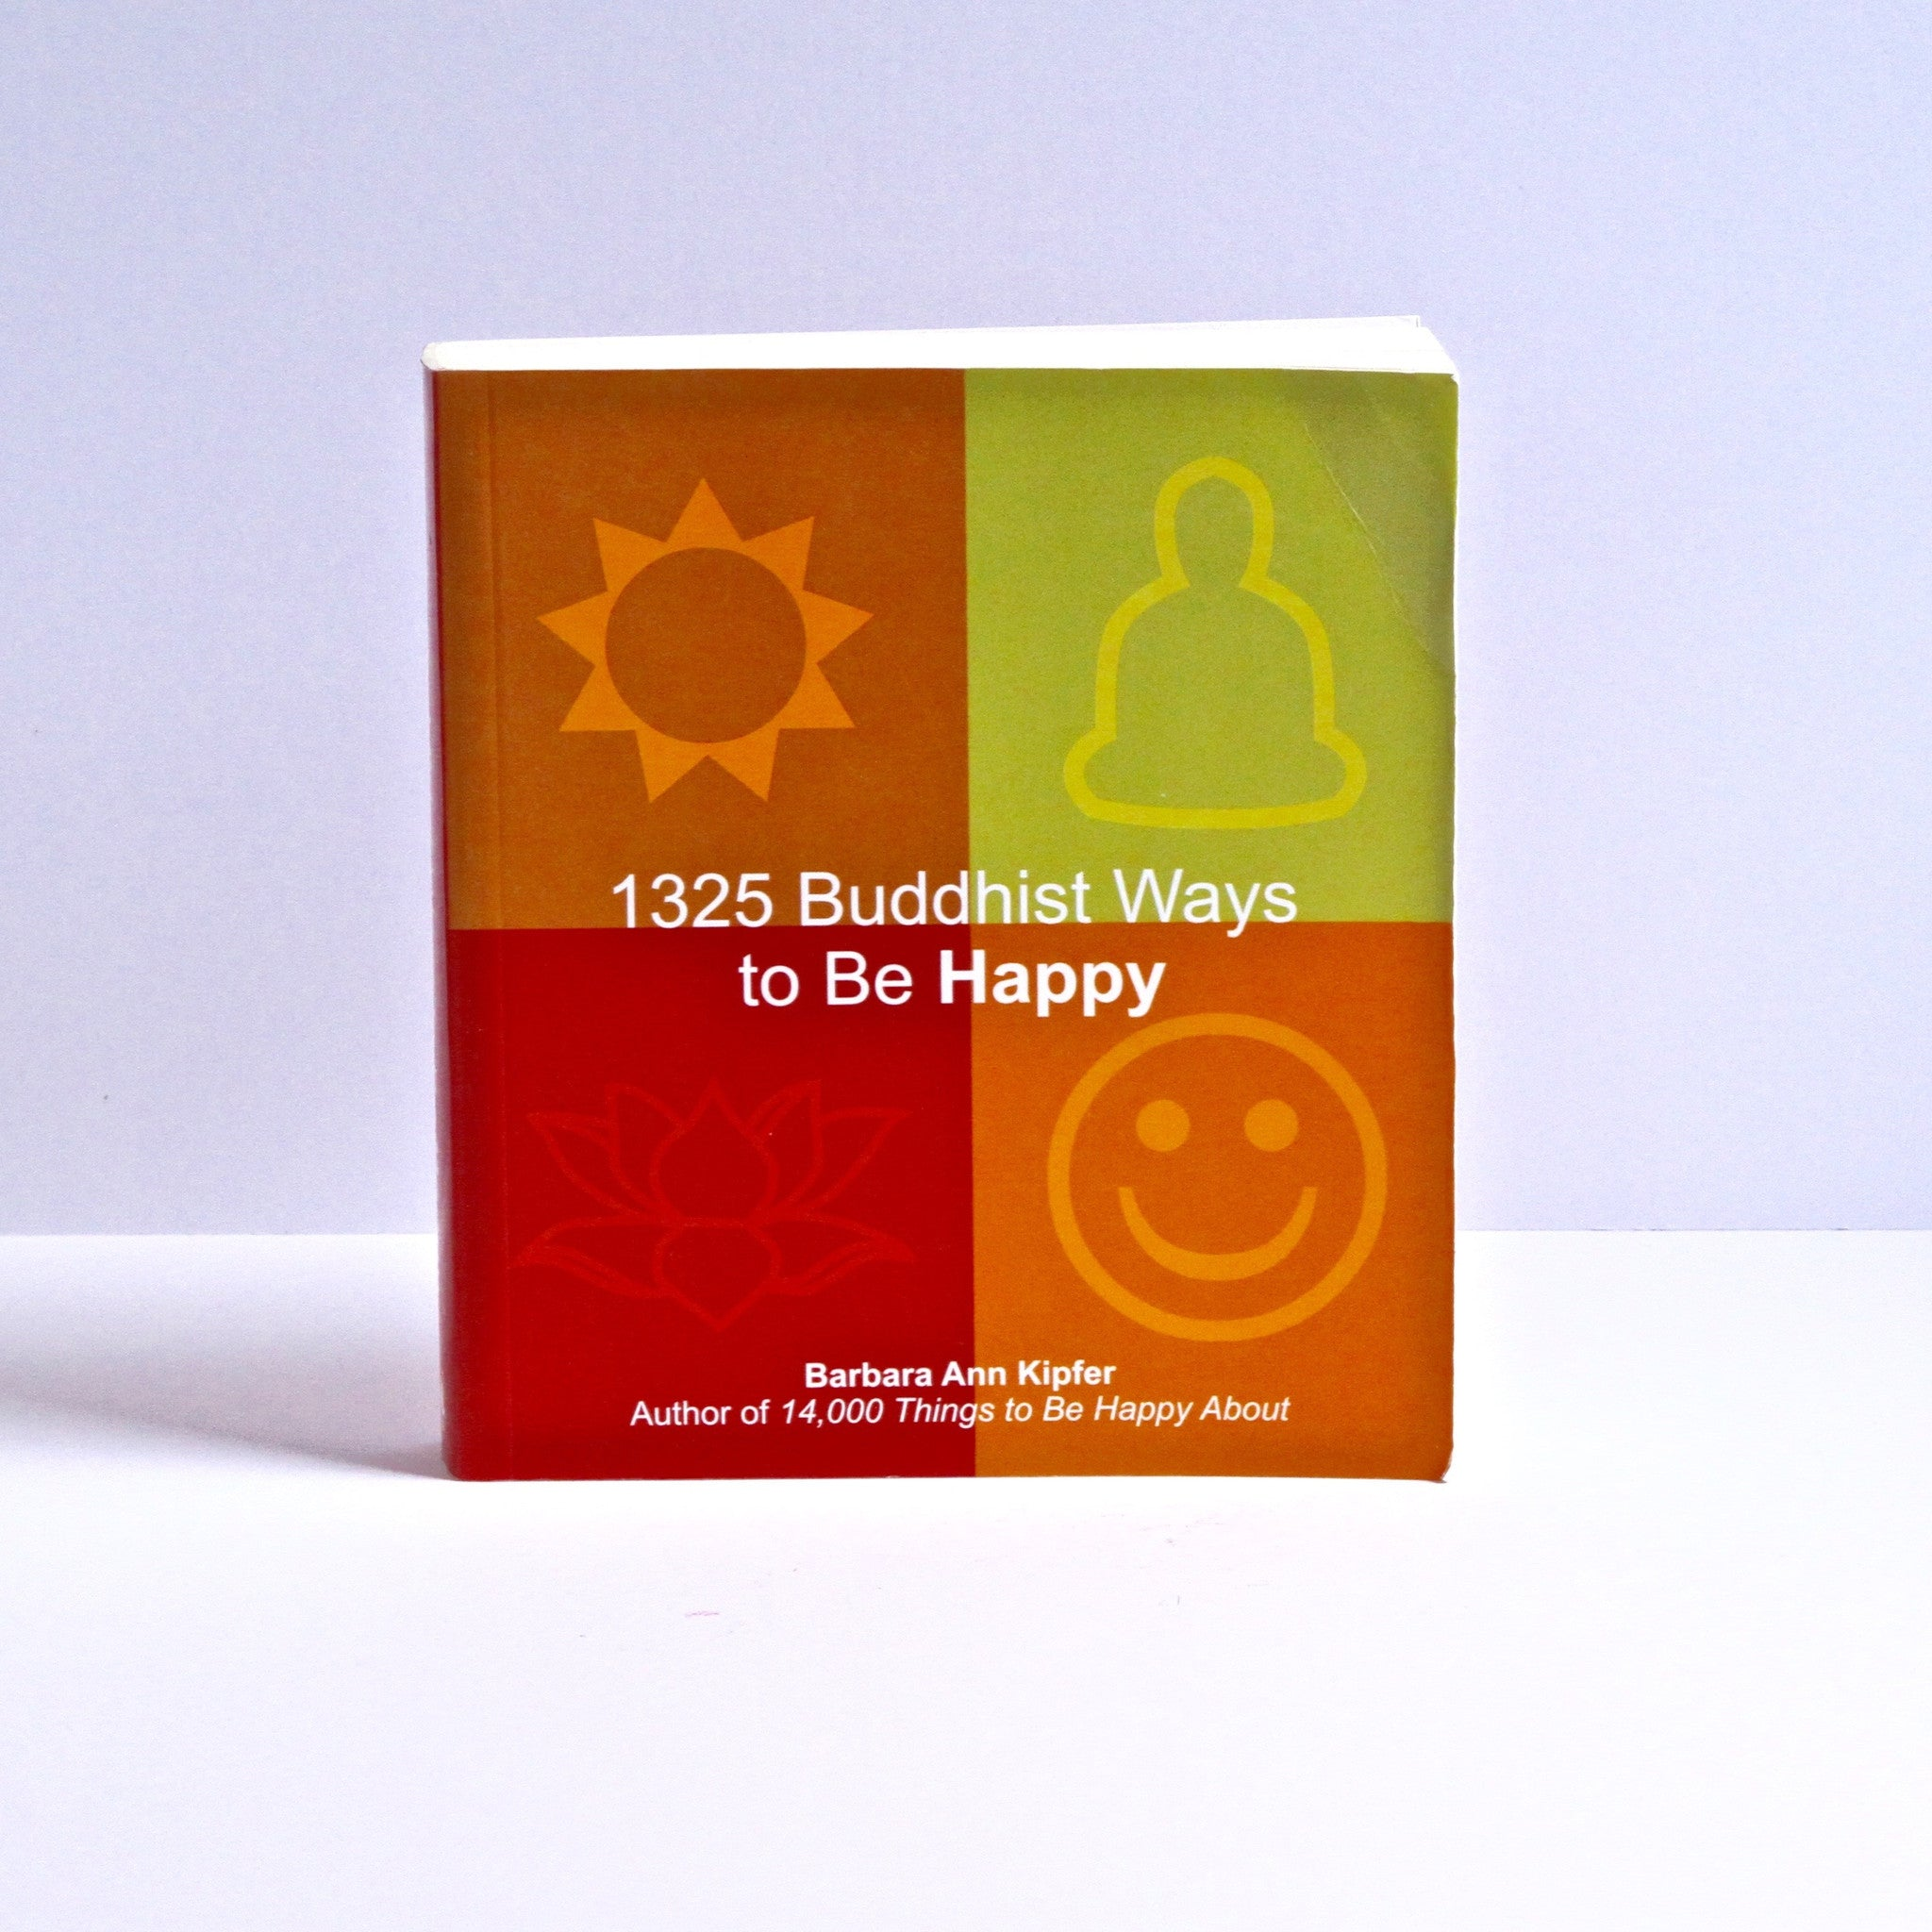 1325 Buddhist Ways to Be Happy by Barbara Ann Kipfer